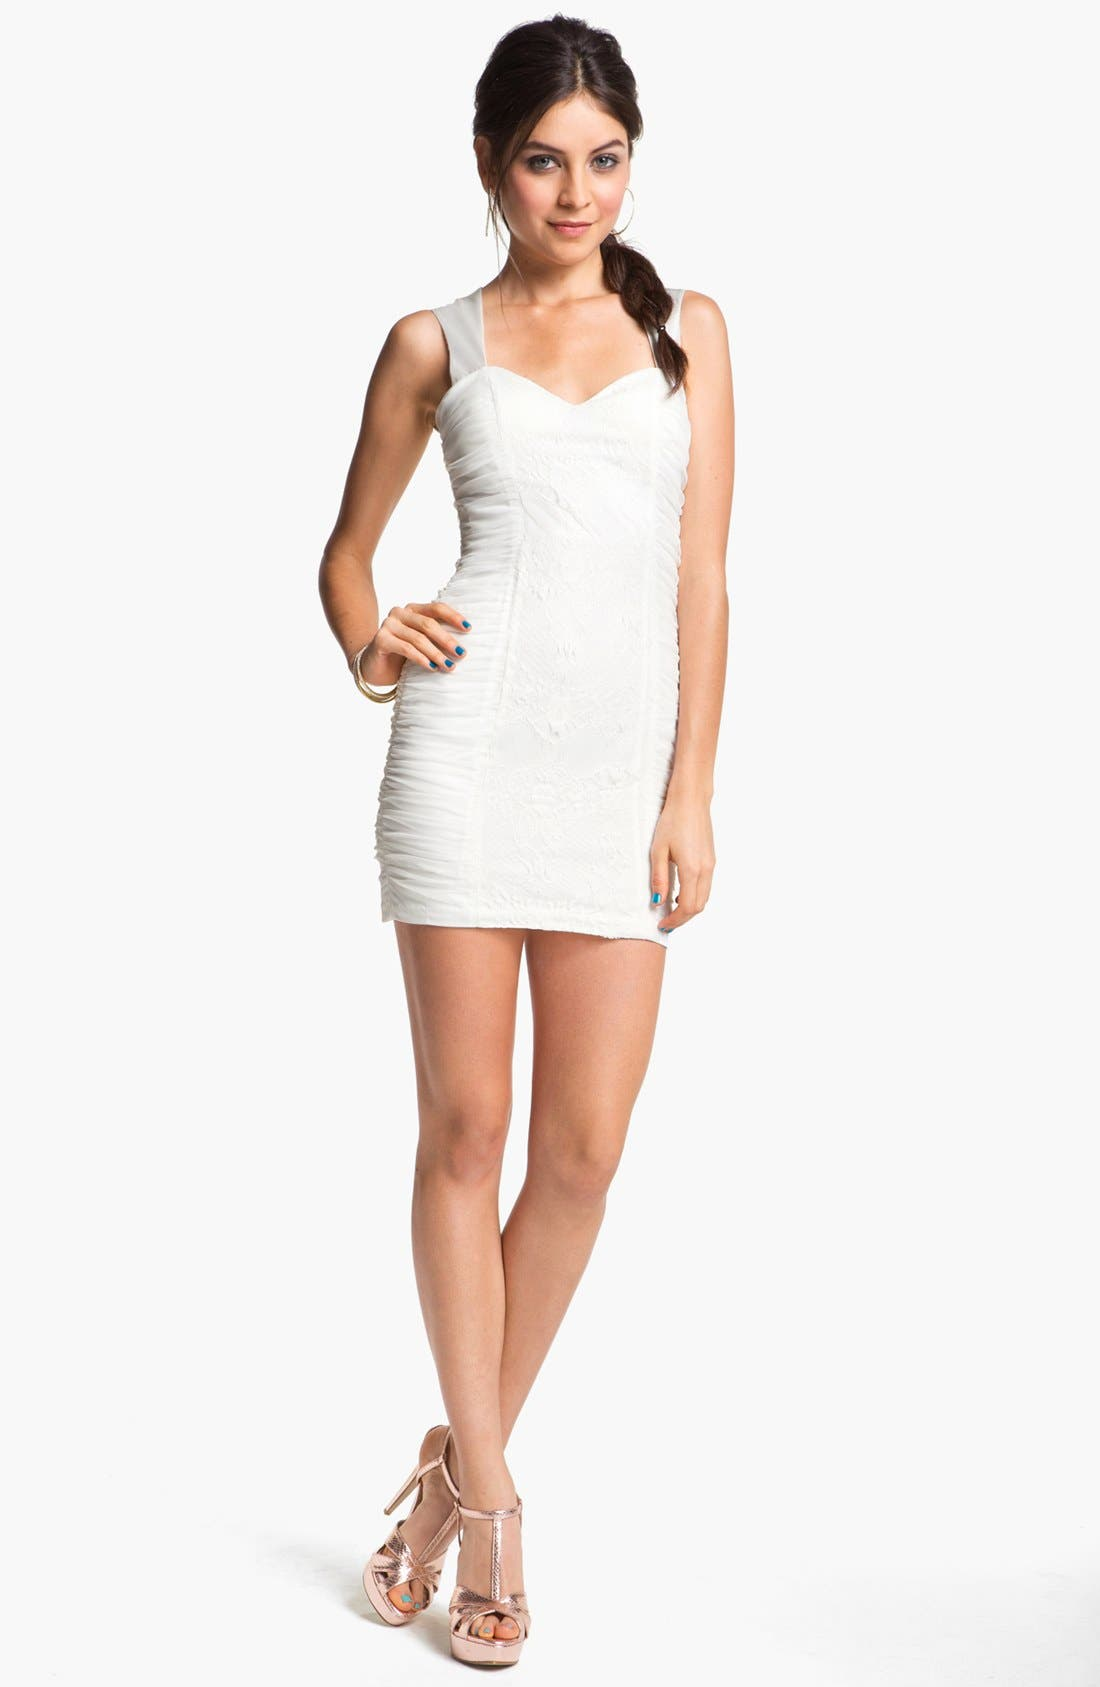 Alternate Image 1 Selected - Hailey Logan Lace Panel Body-Con Dress (Juniors) (Online Exclusive)